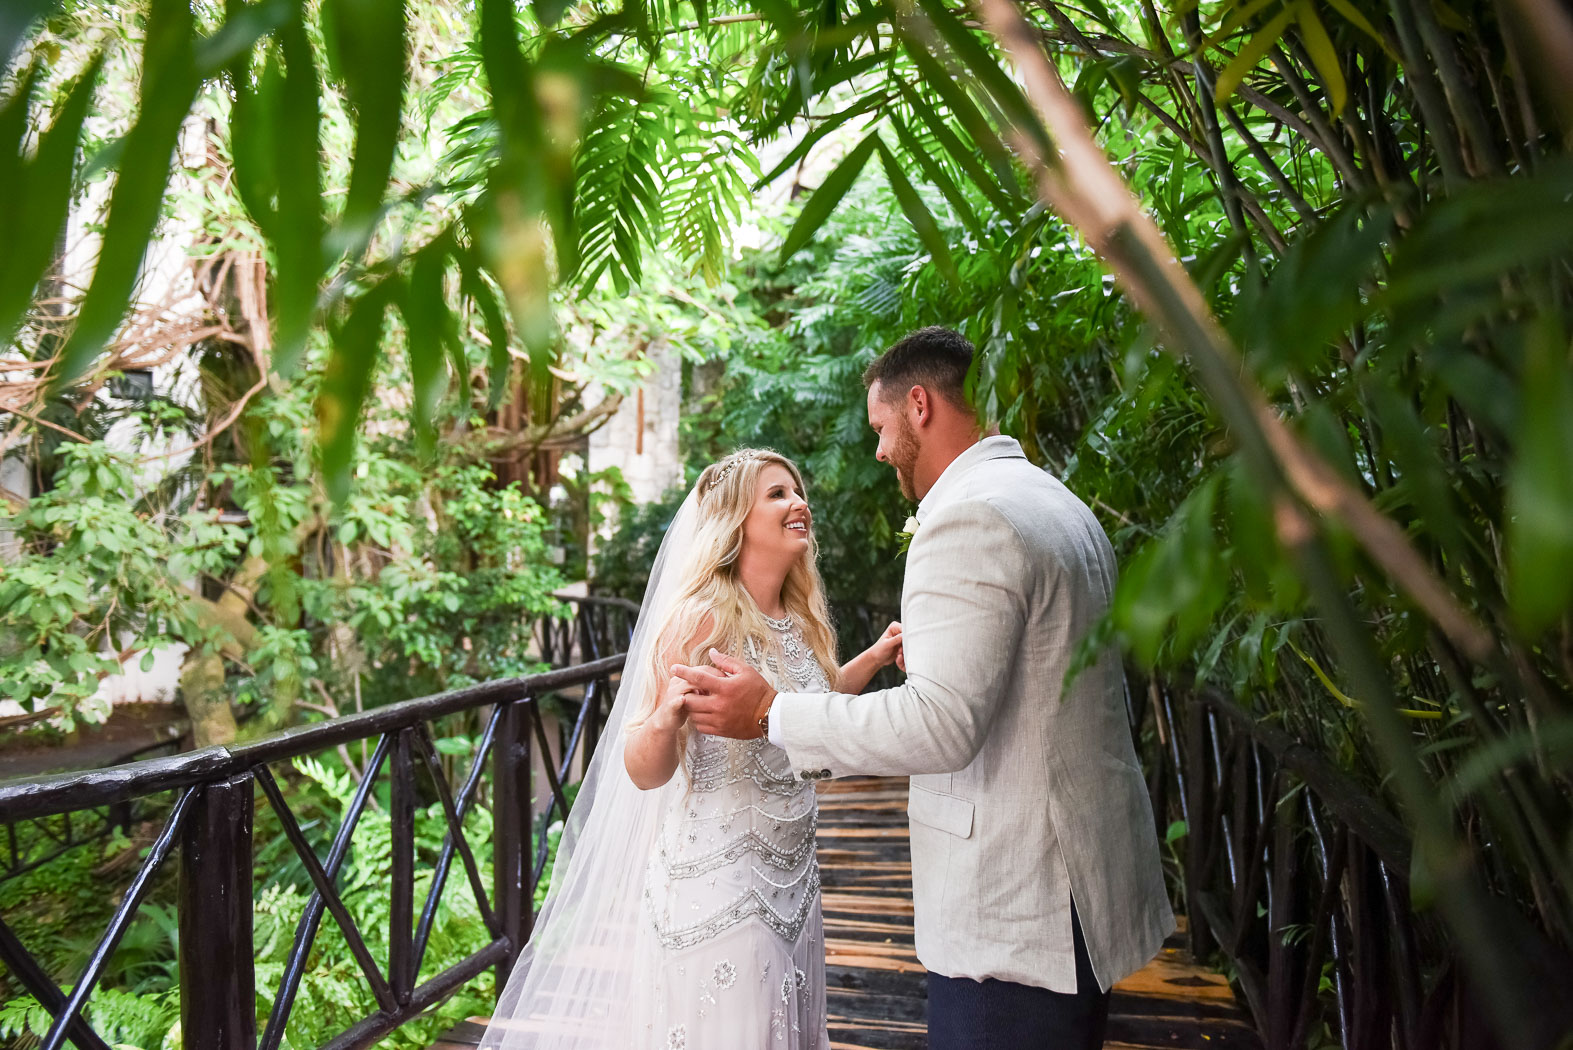 a couple in their wedding attire surrounded by greenery outside